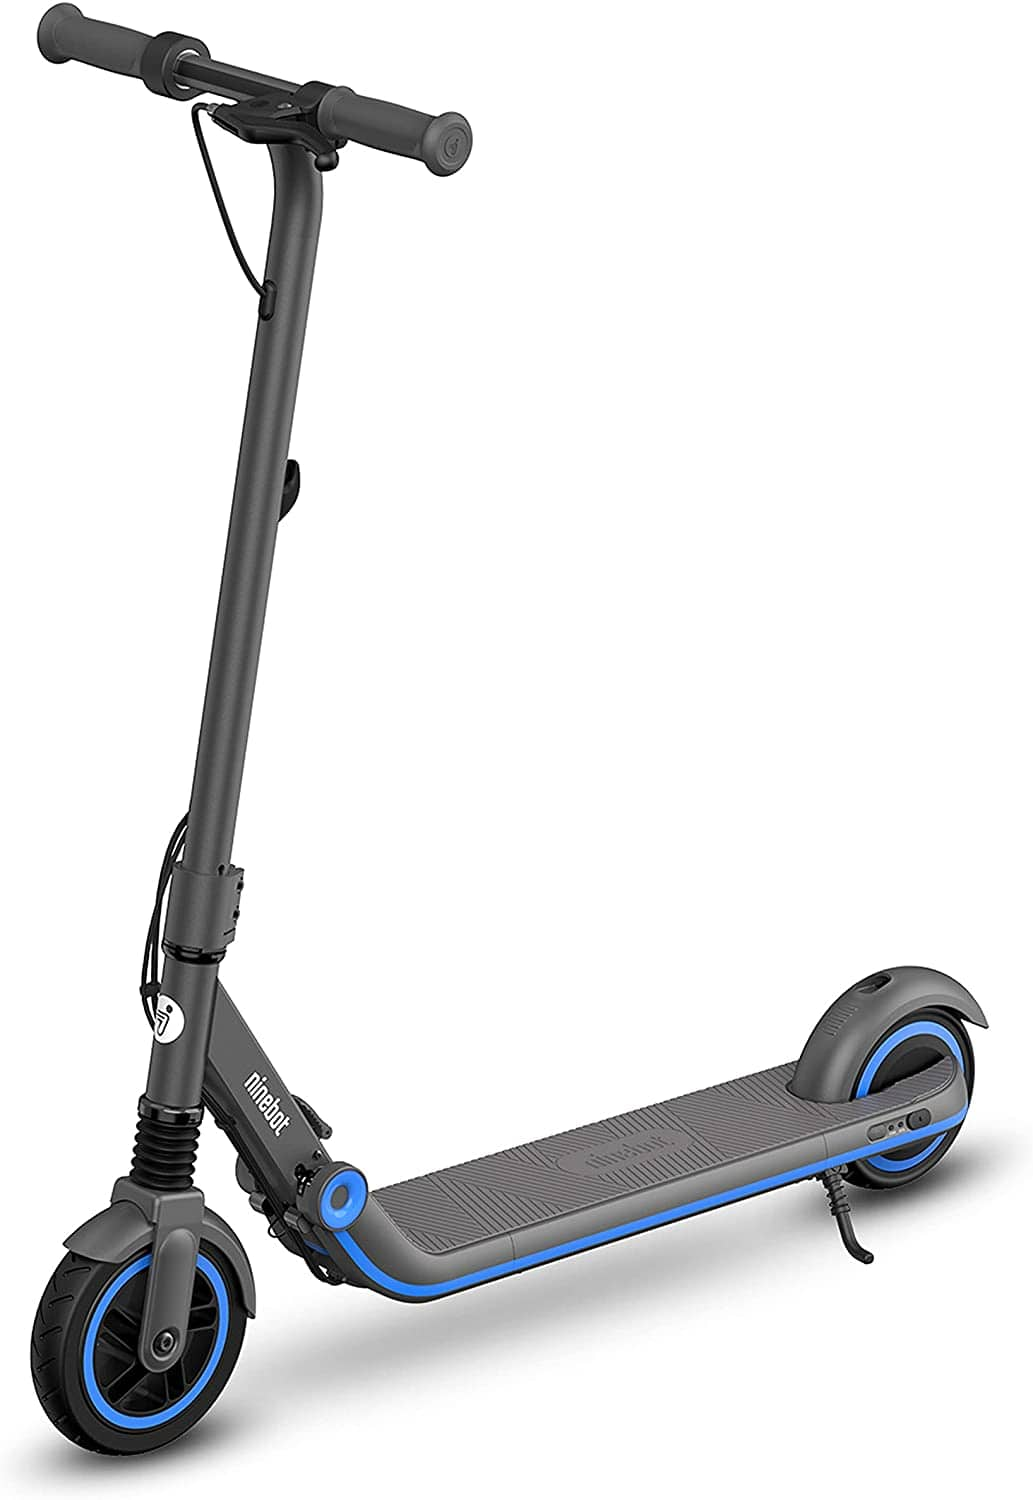 Segway Ninebot eKickScooter ZING E8 and E10, Electric Kick Scooter for Kids, Teens, Boys and Girls, Lightweight and Foldable, Pink, Blue, Dark Grey $169.99